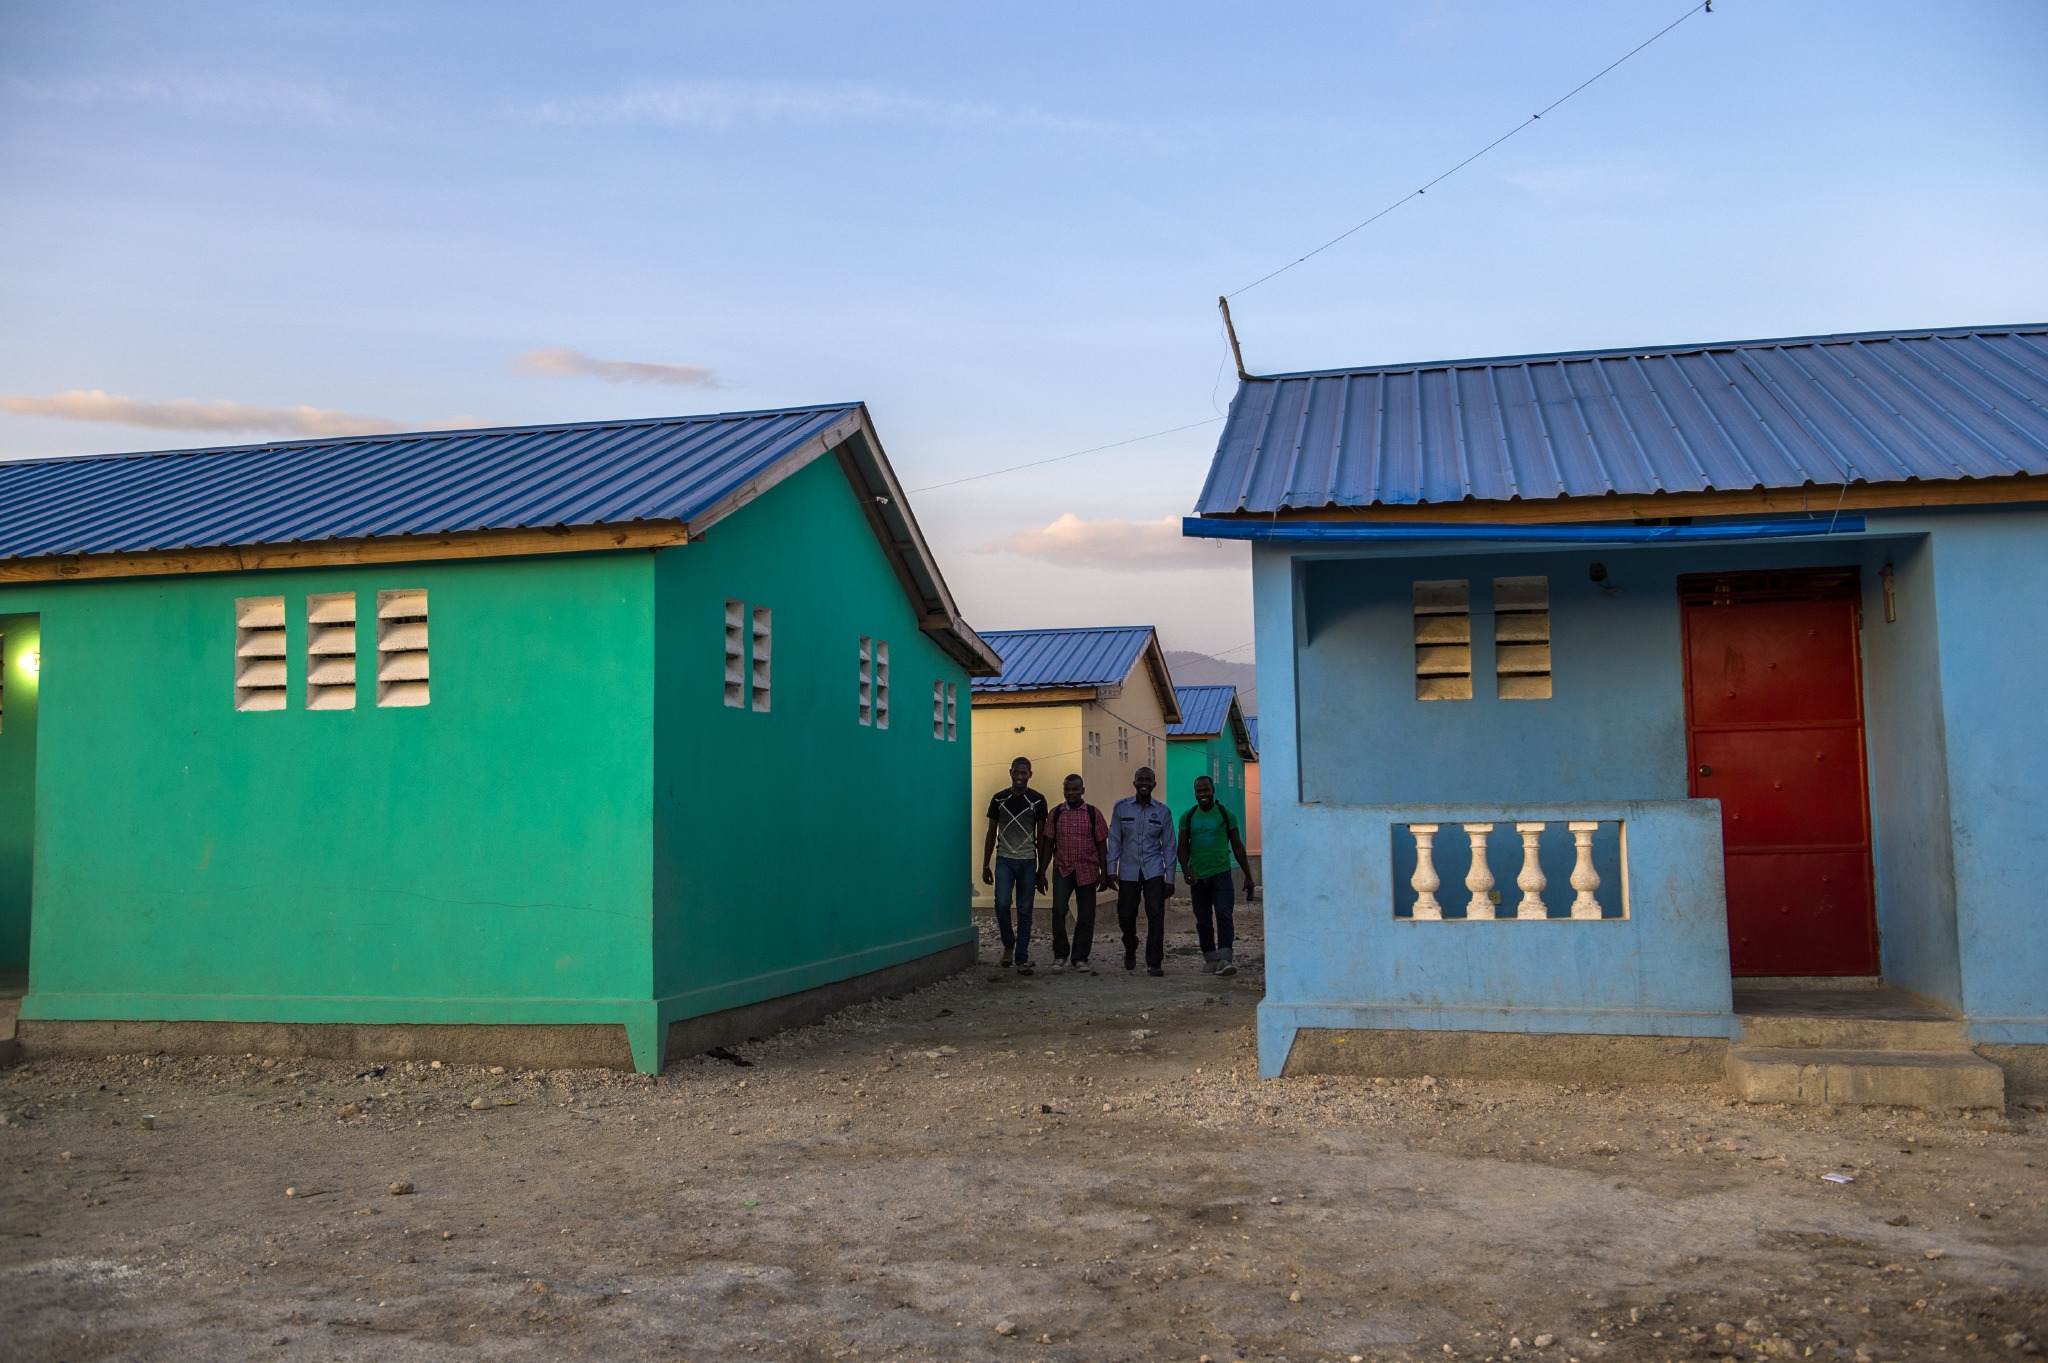 Members of our Haitian team stroll through houses built by the foundation in Port-au-Prince